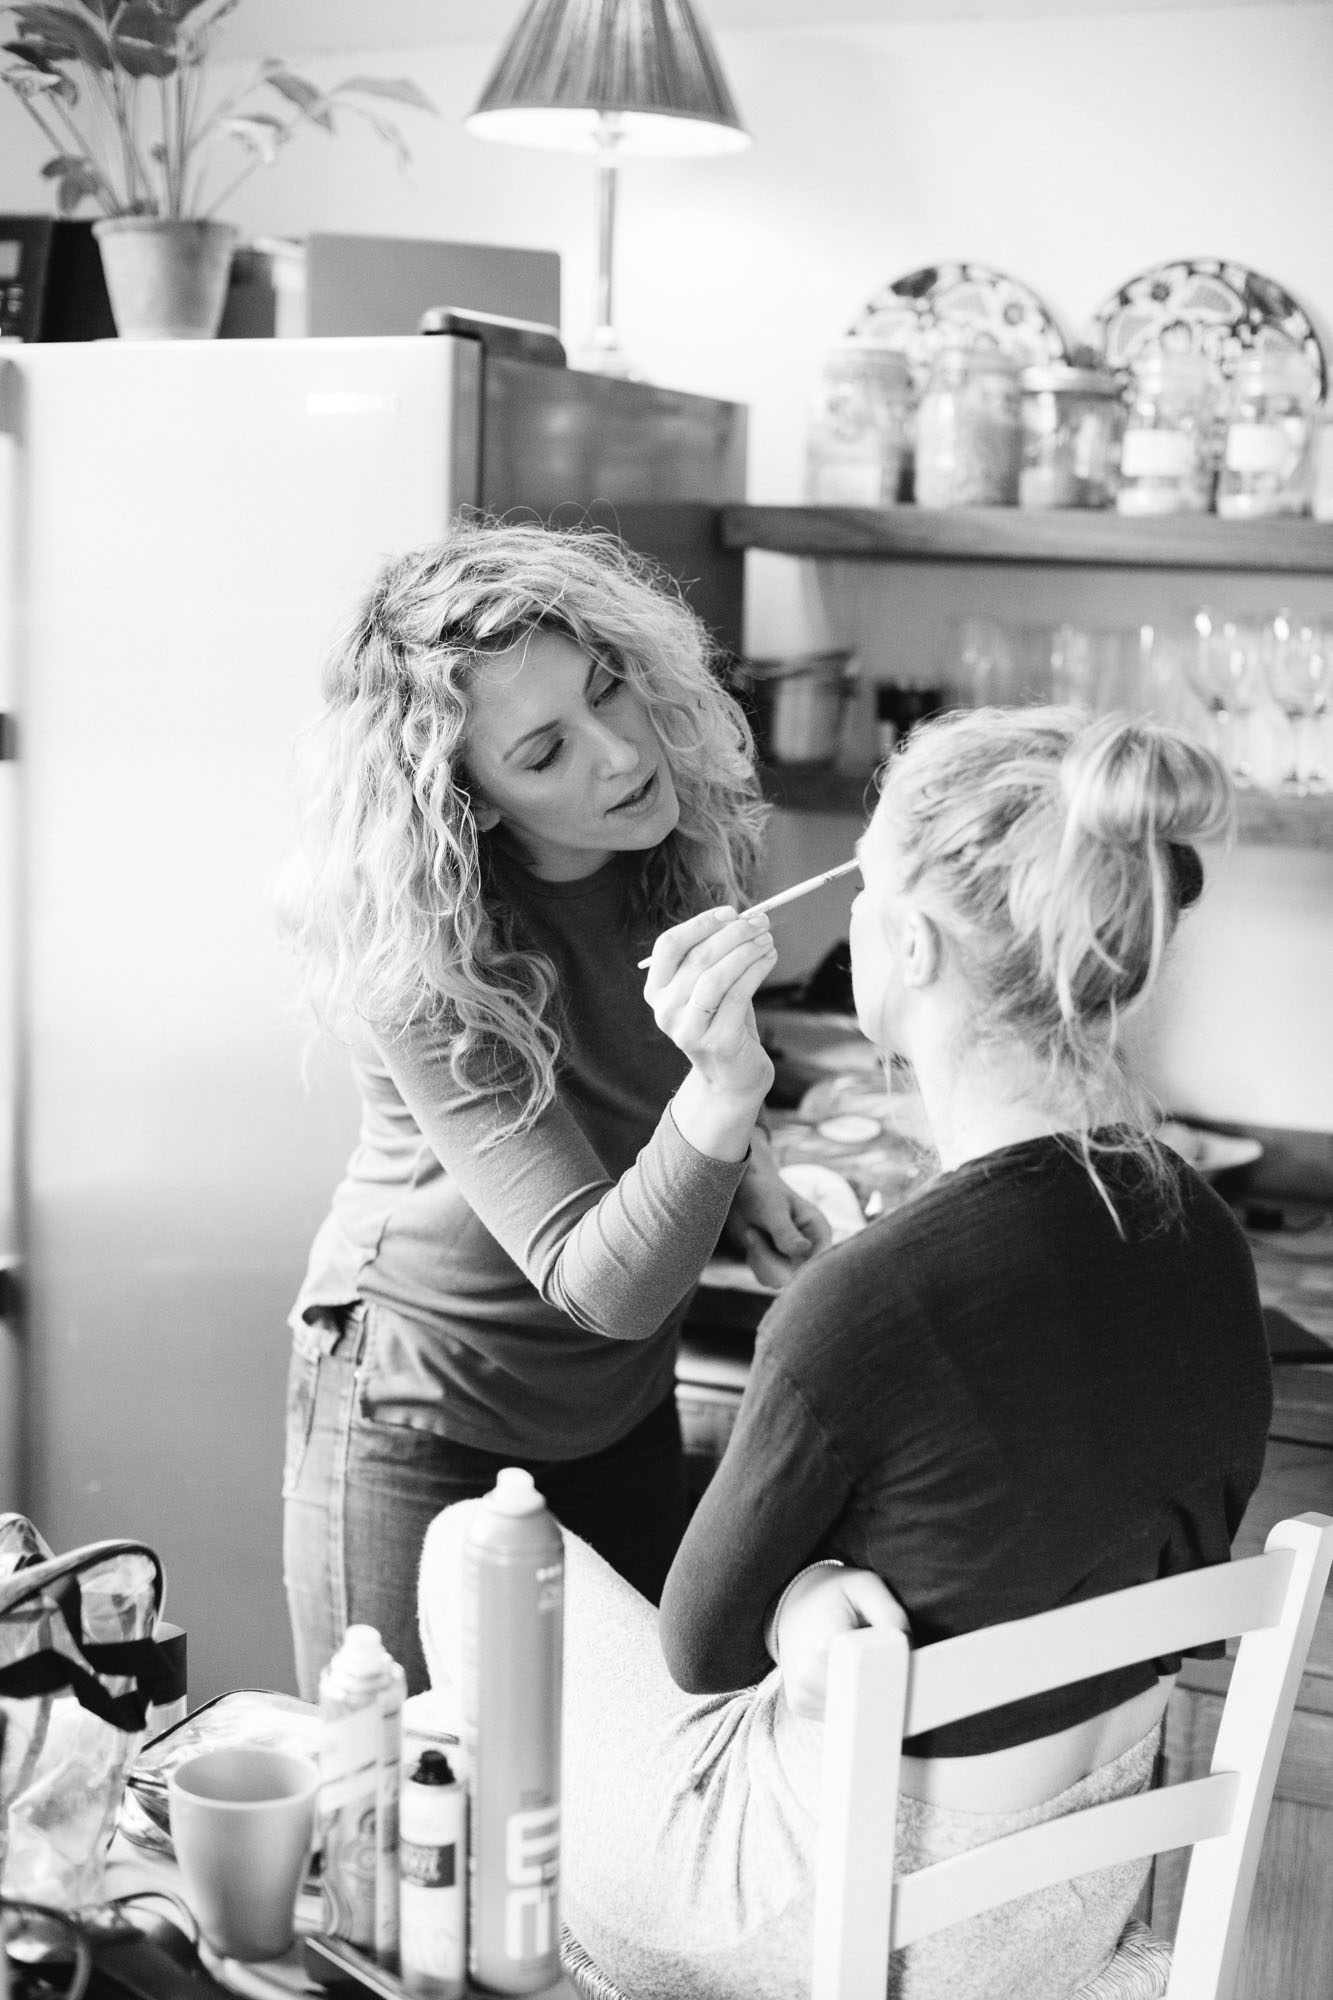 Make up artist from ID doing bridesmaids make up on wedding morning